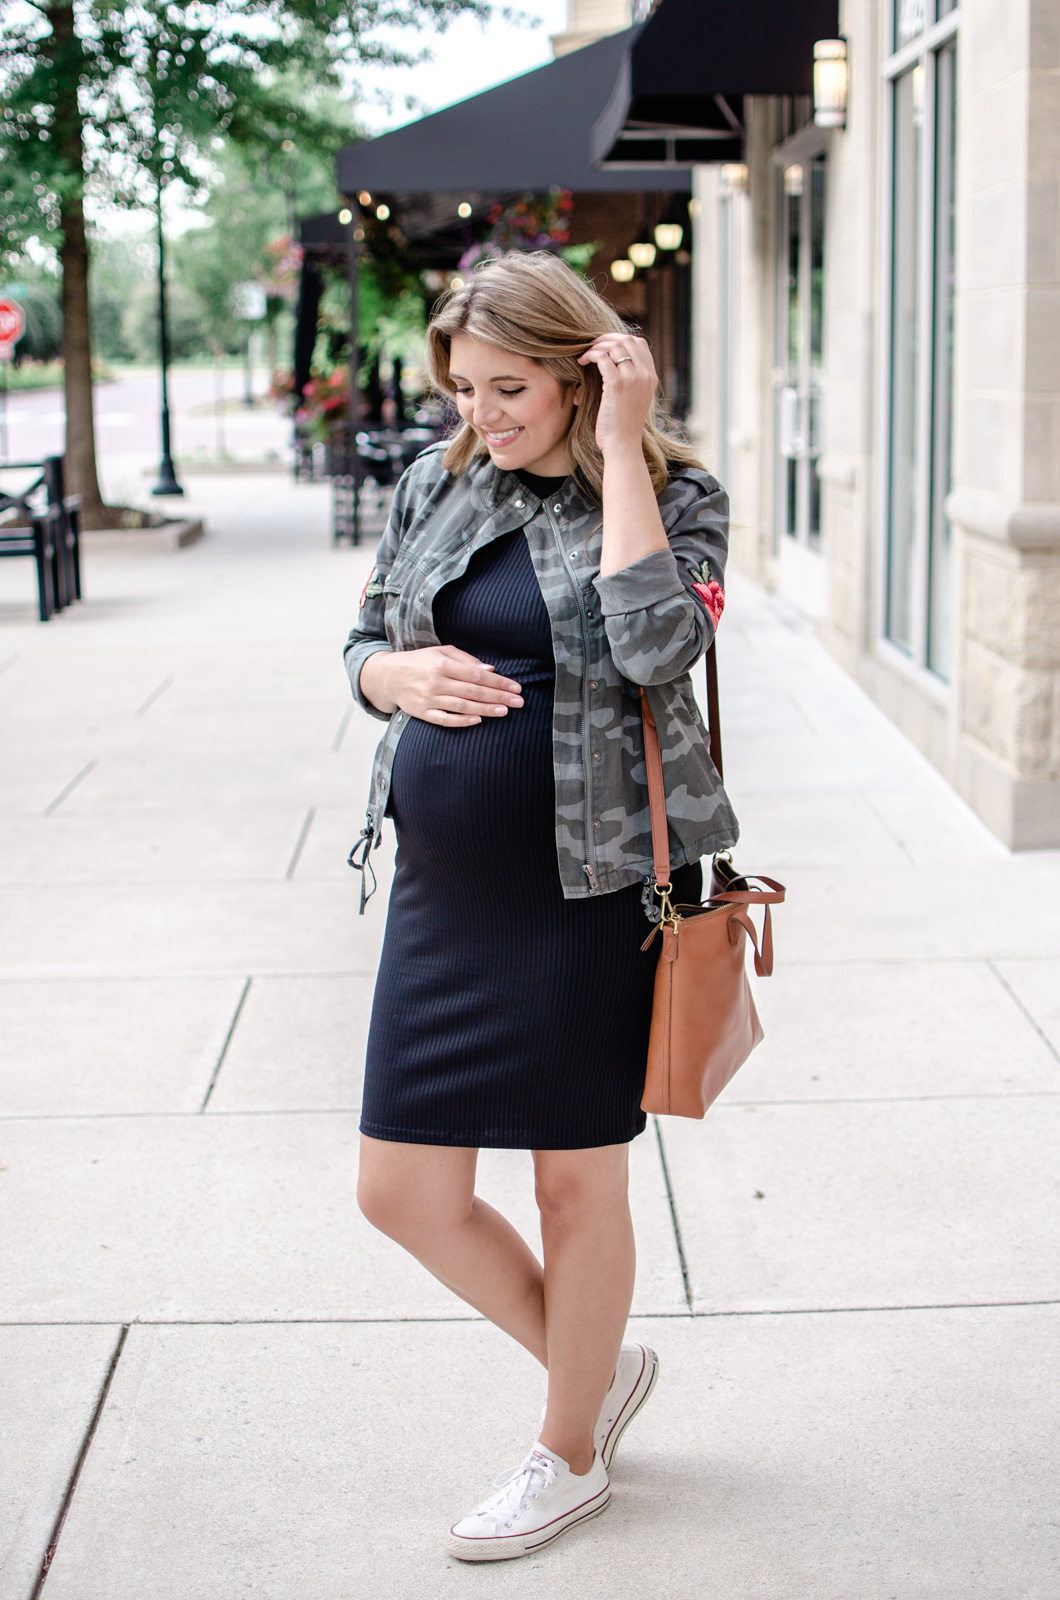 fall pregnancy outfit - camo jacket outfit idea for fall - nordstrom anniversary sale outfits   bylaurenm.com